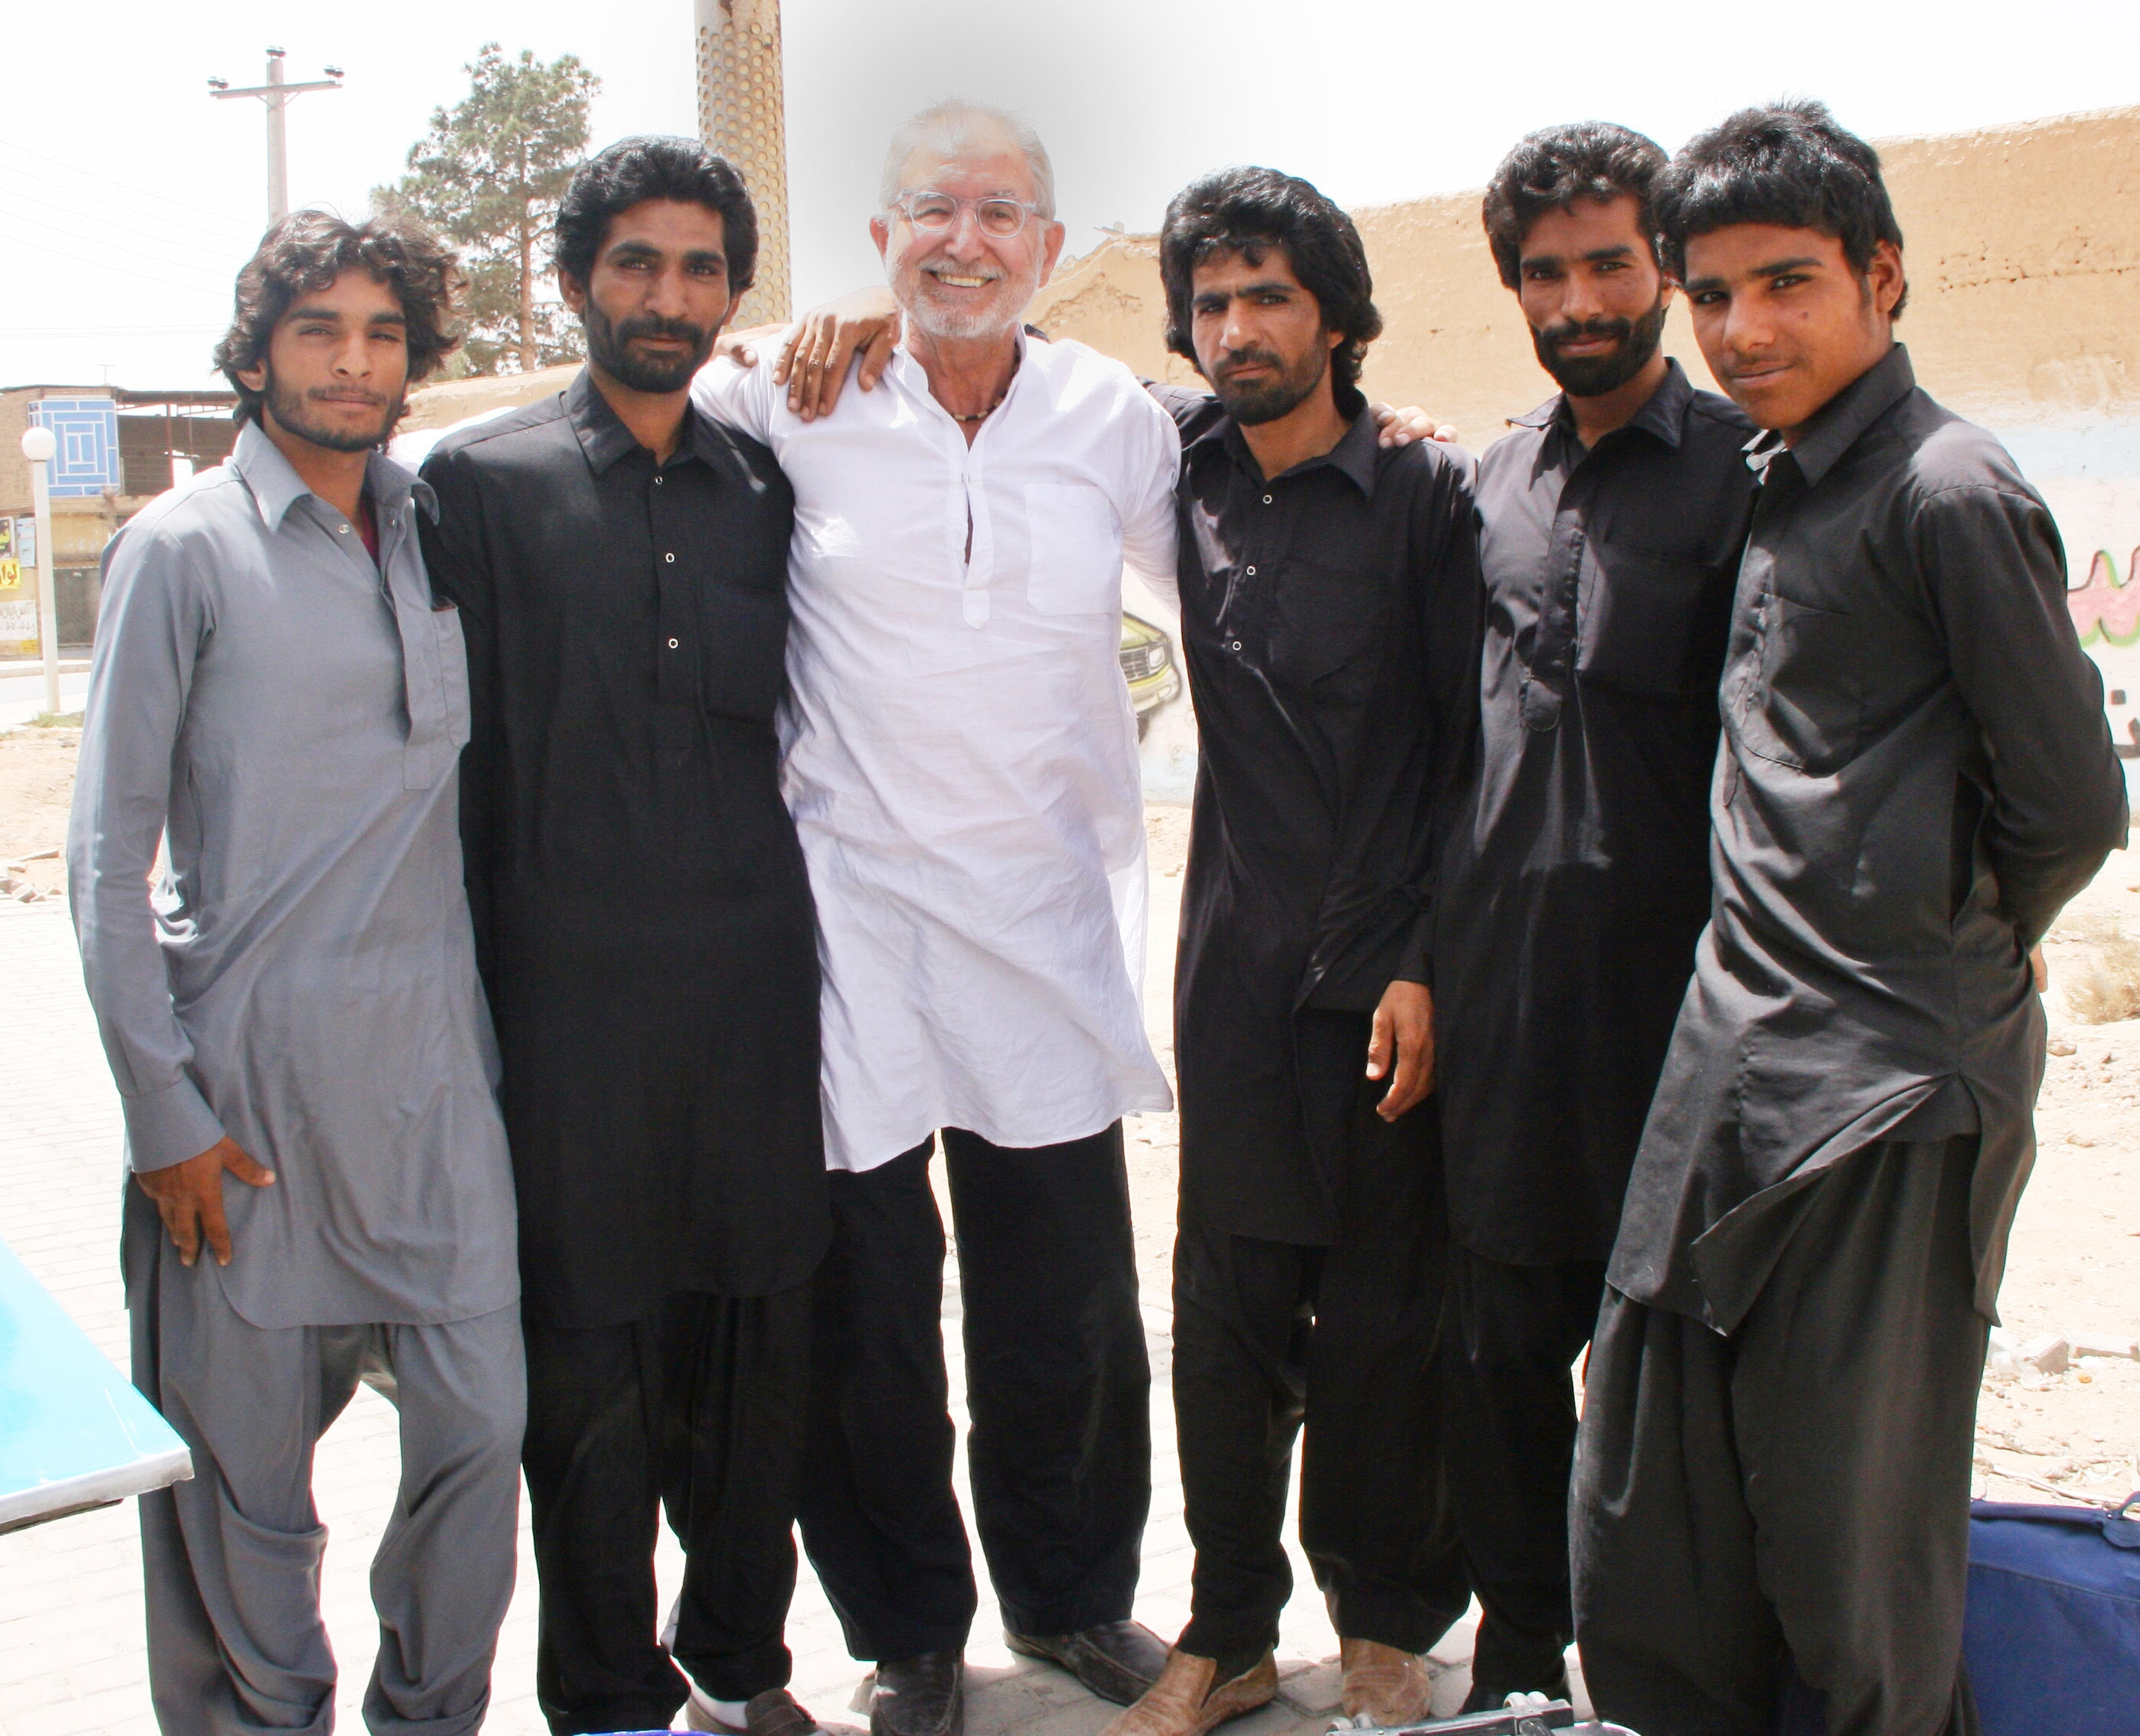 On my recent trip to Iran in 2014, I met up with and befriended this gang of brothers from Baluchistan...